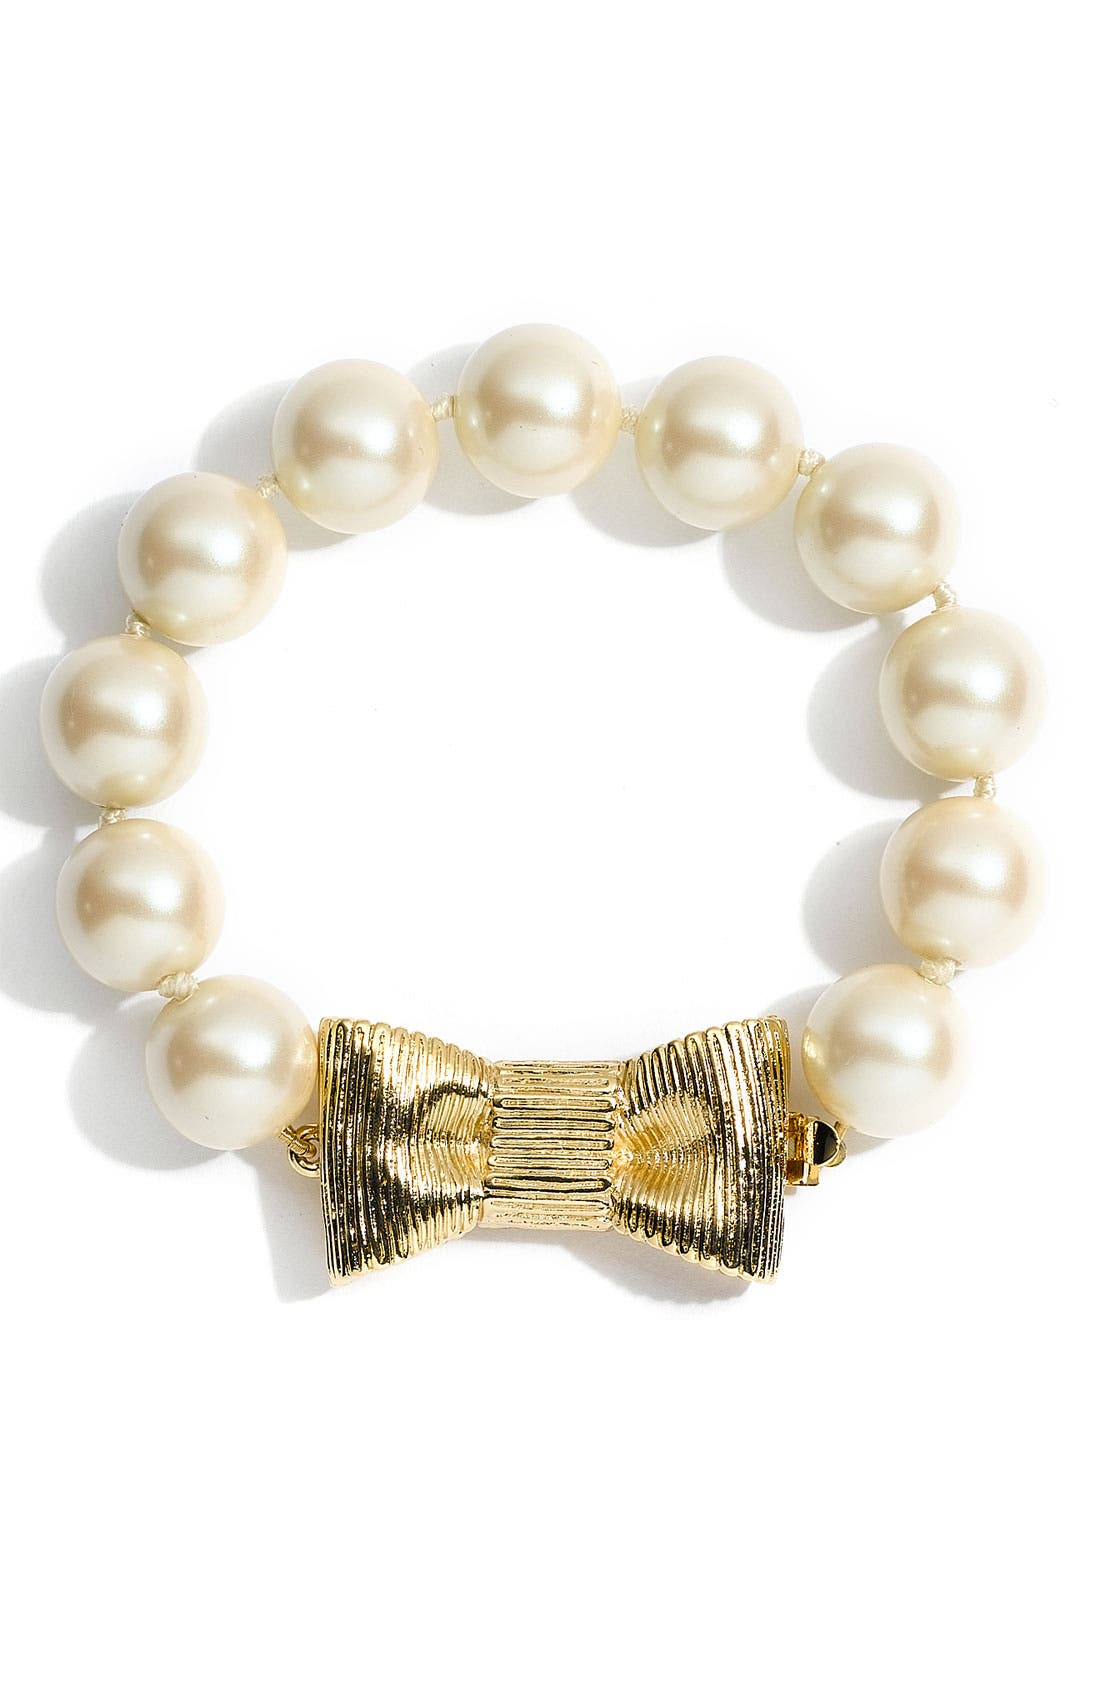 Alternate Image 1 Selected - kate spade new york 'all wrapped up' glass pearl bracelet